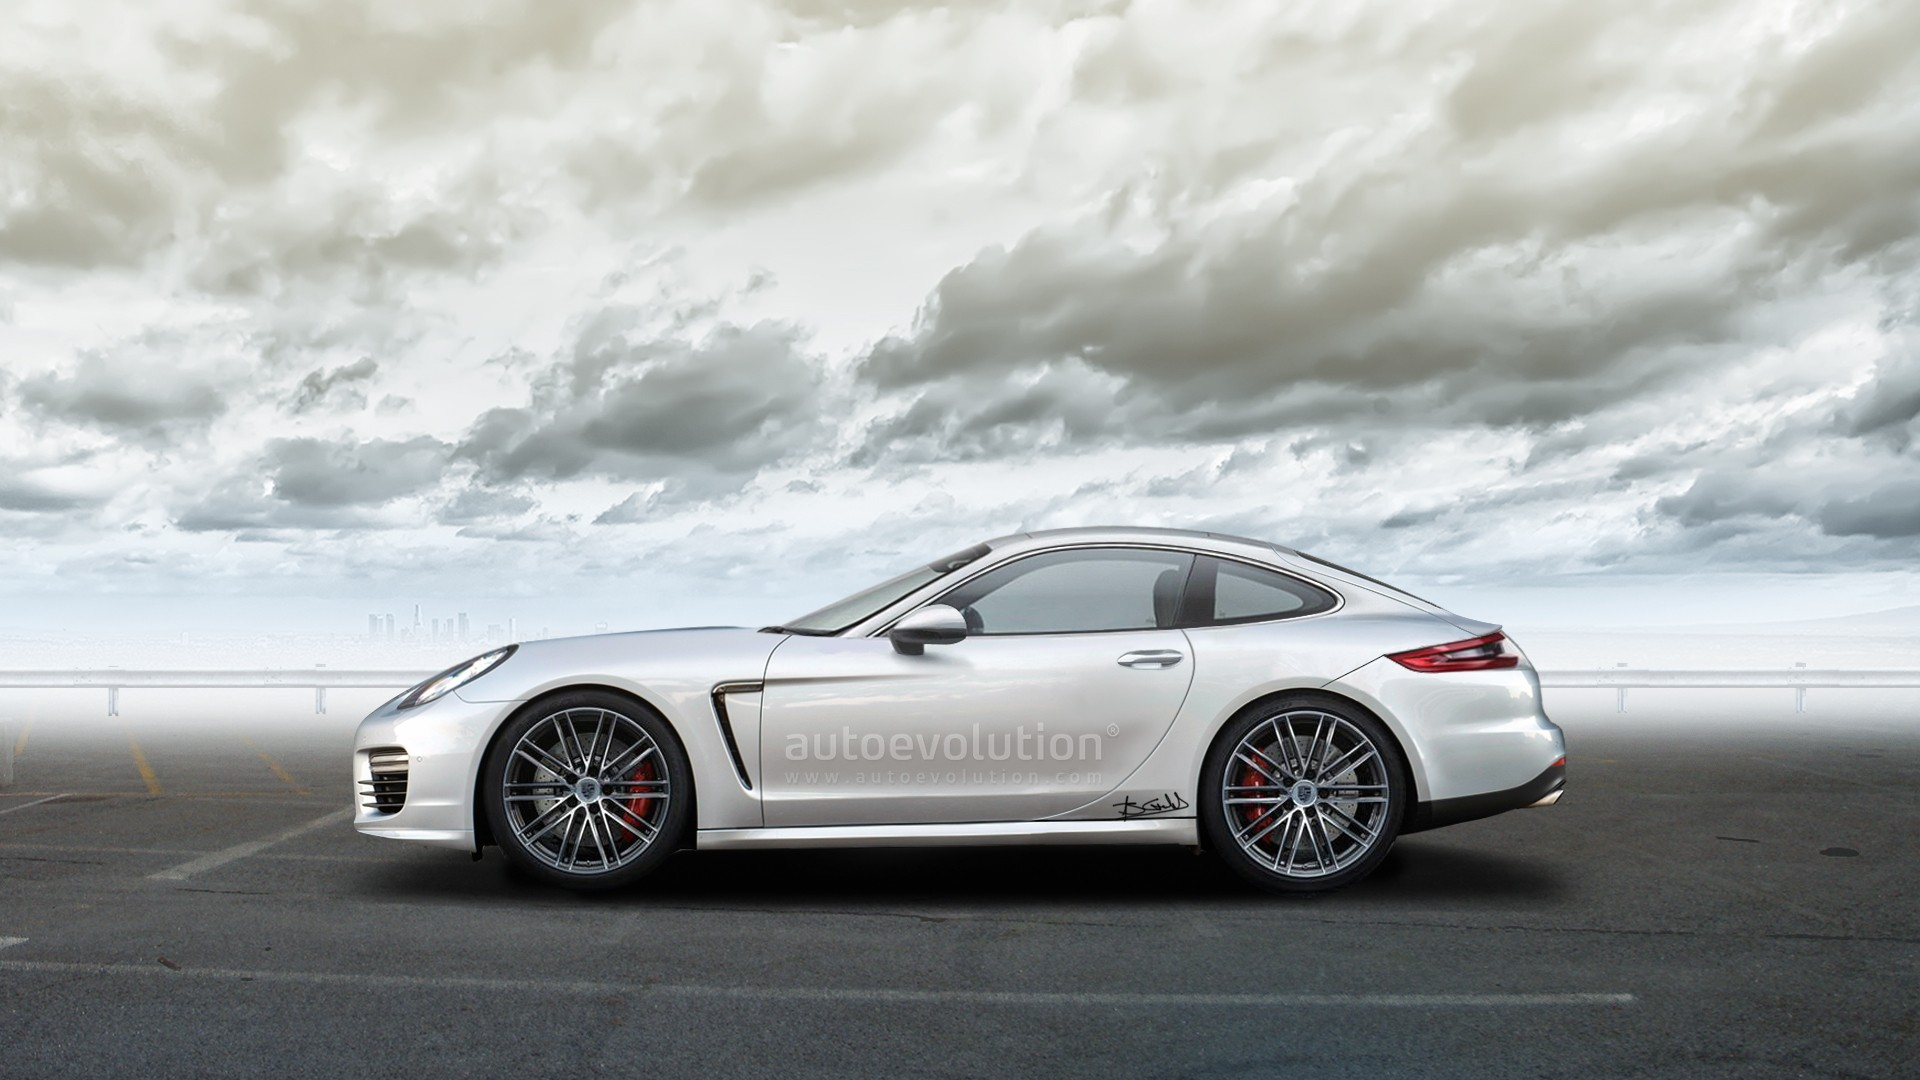 2015 porsche panamera s e hybrid hd wallpapers autoevolution. Black Bedroom Furniture Sets. Home Design Ideas